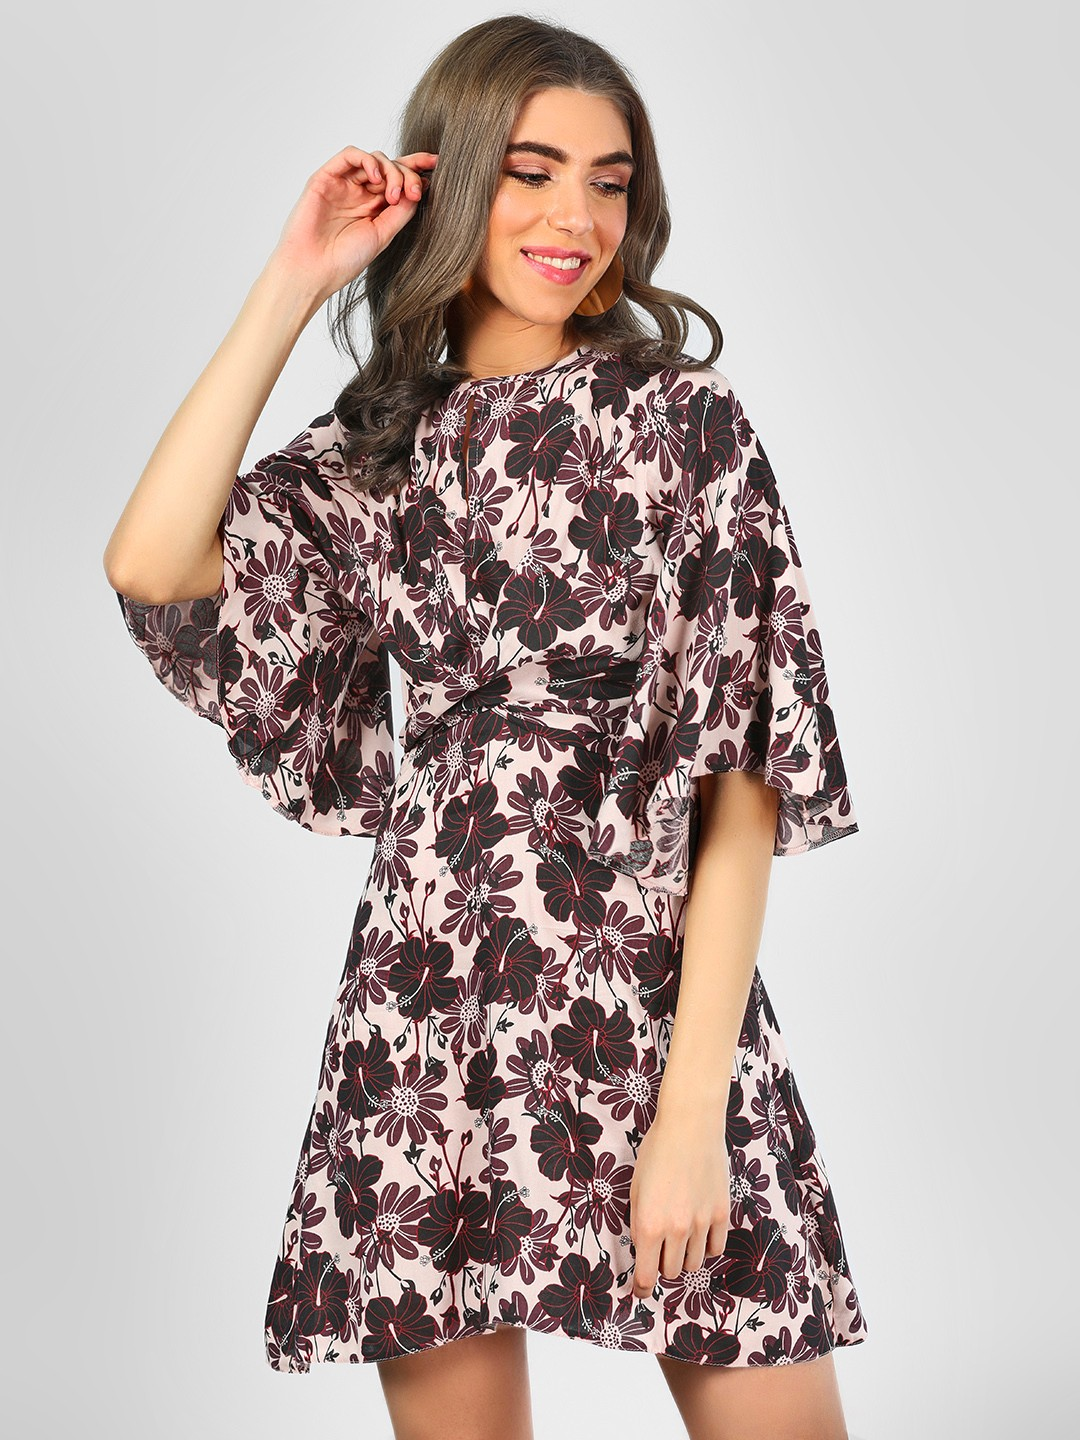 KOOVS Multi Floral Print Front Tie Knot Dress 1